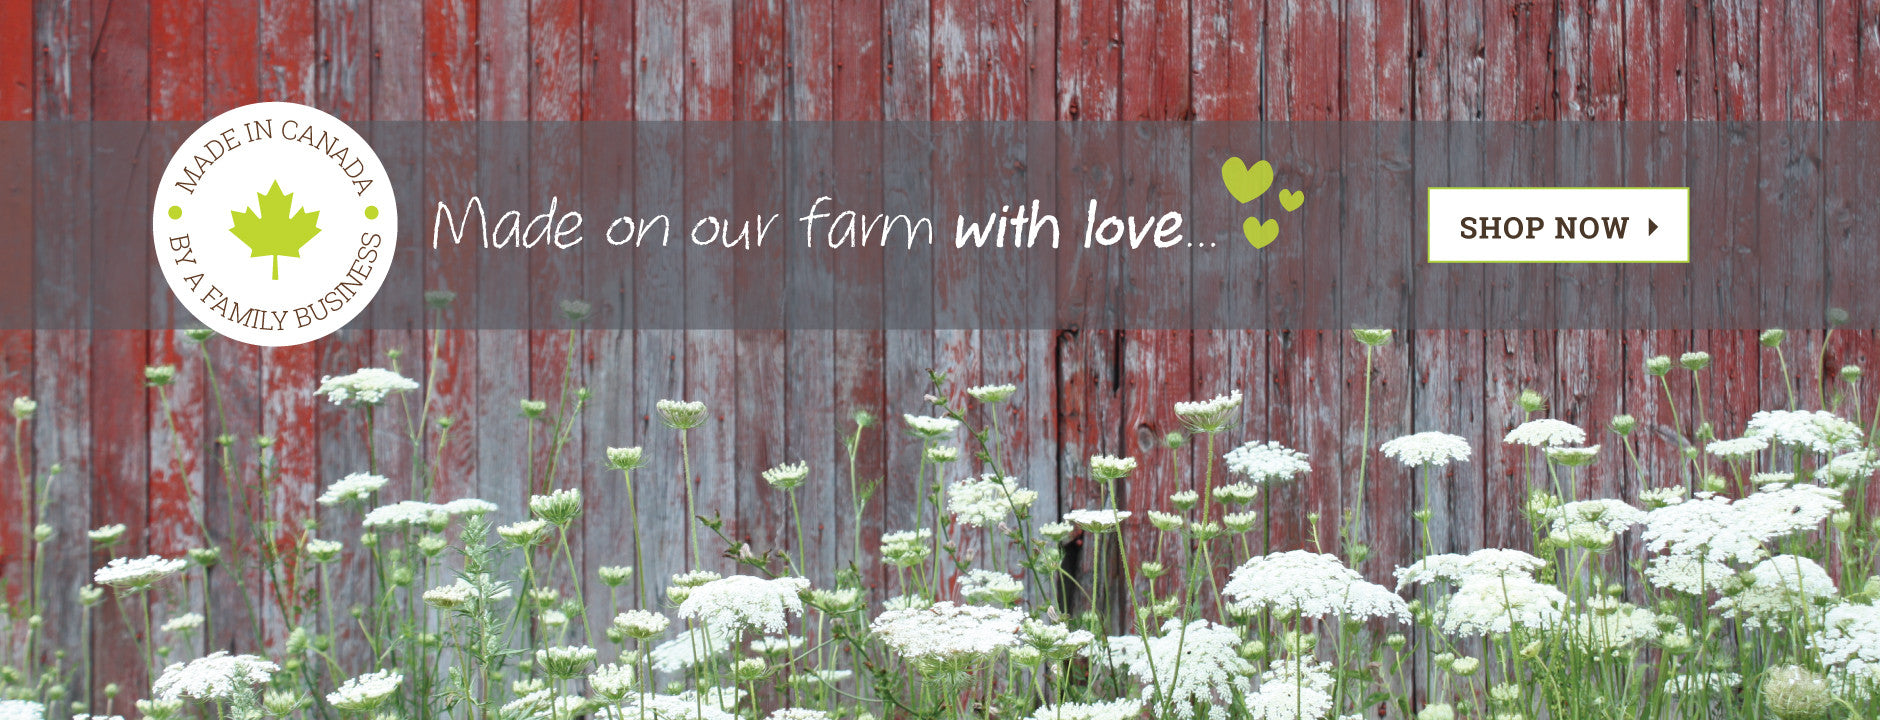 Made in Canada, by a family business - Made on our farm with love...